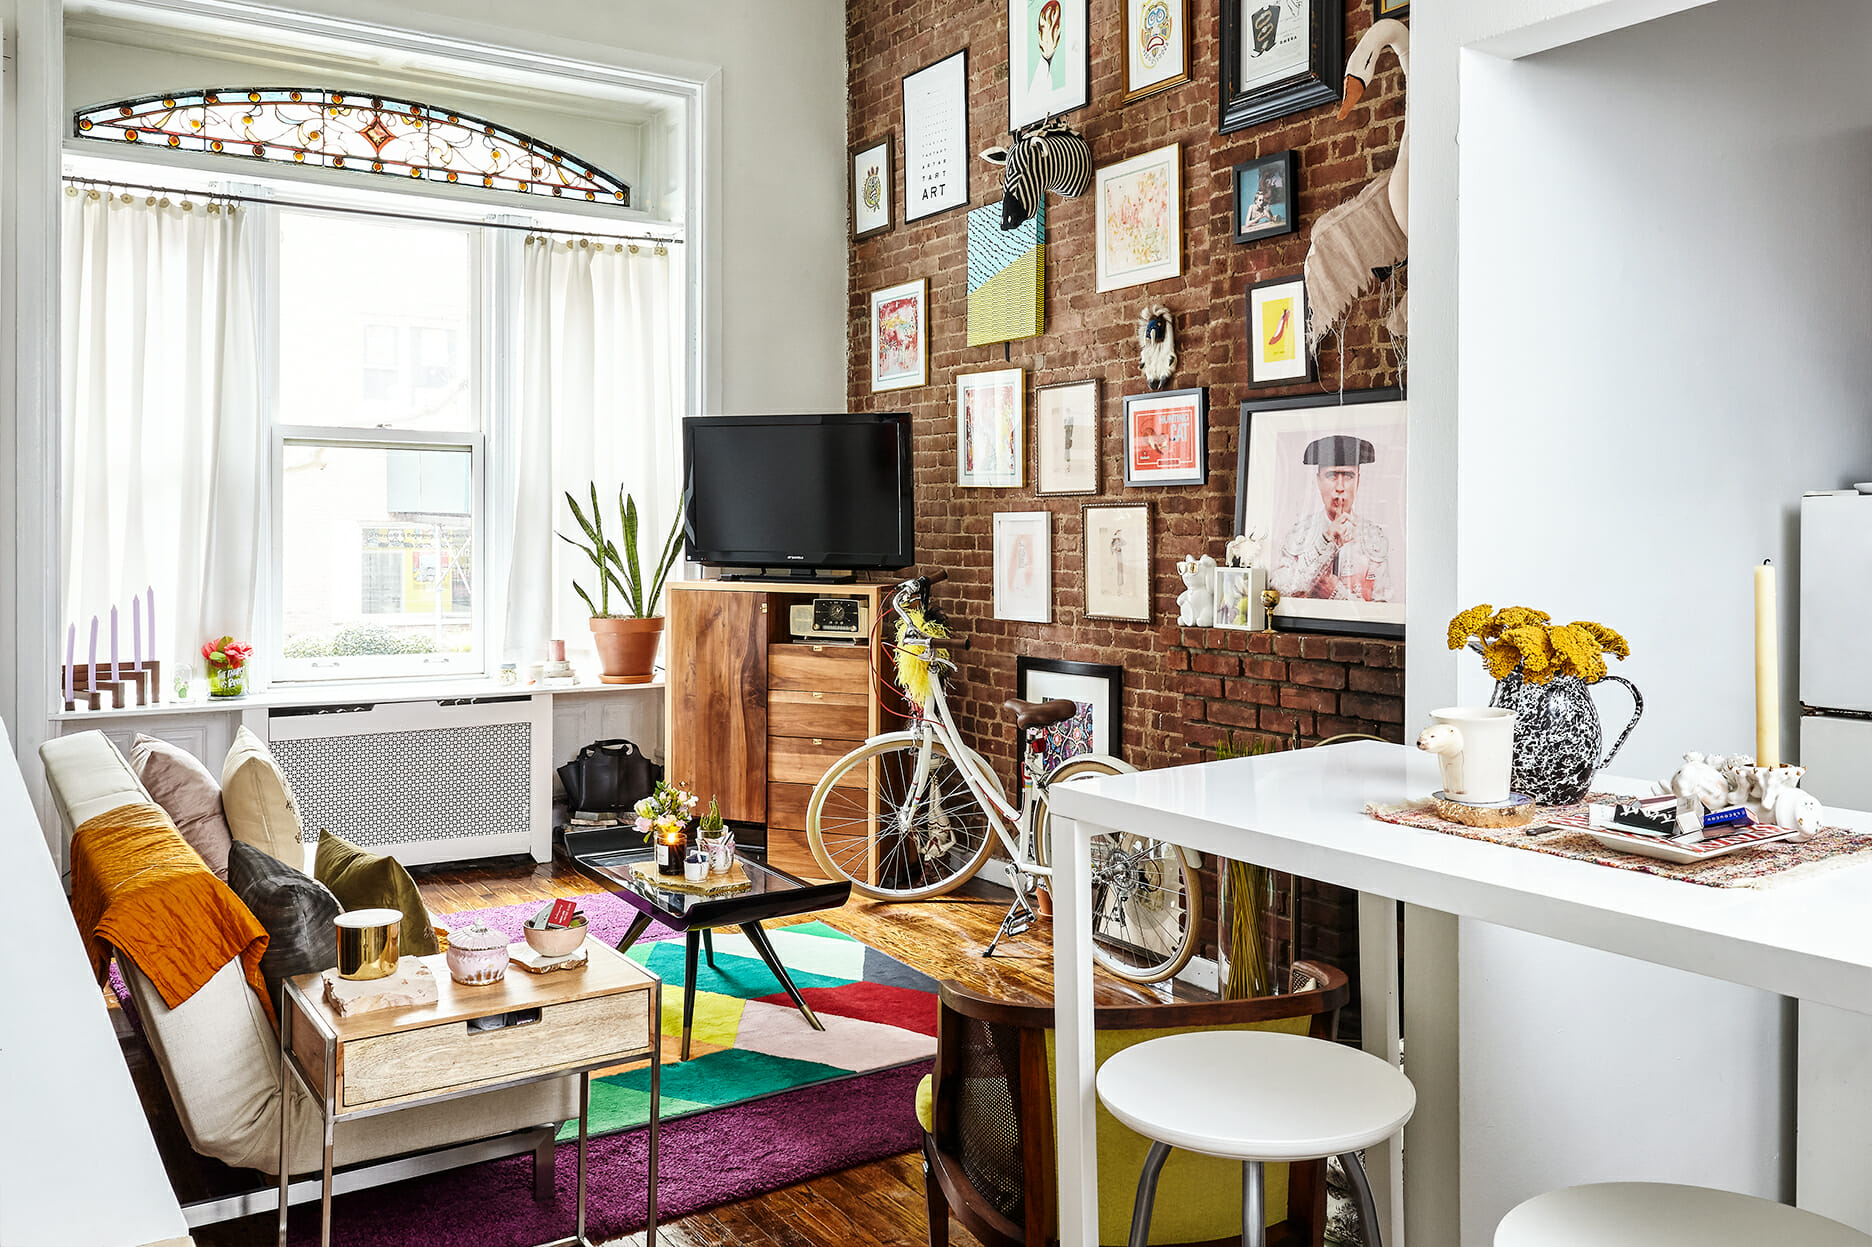 A Colorful Upper West Side Studio With a Lofted Bed